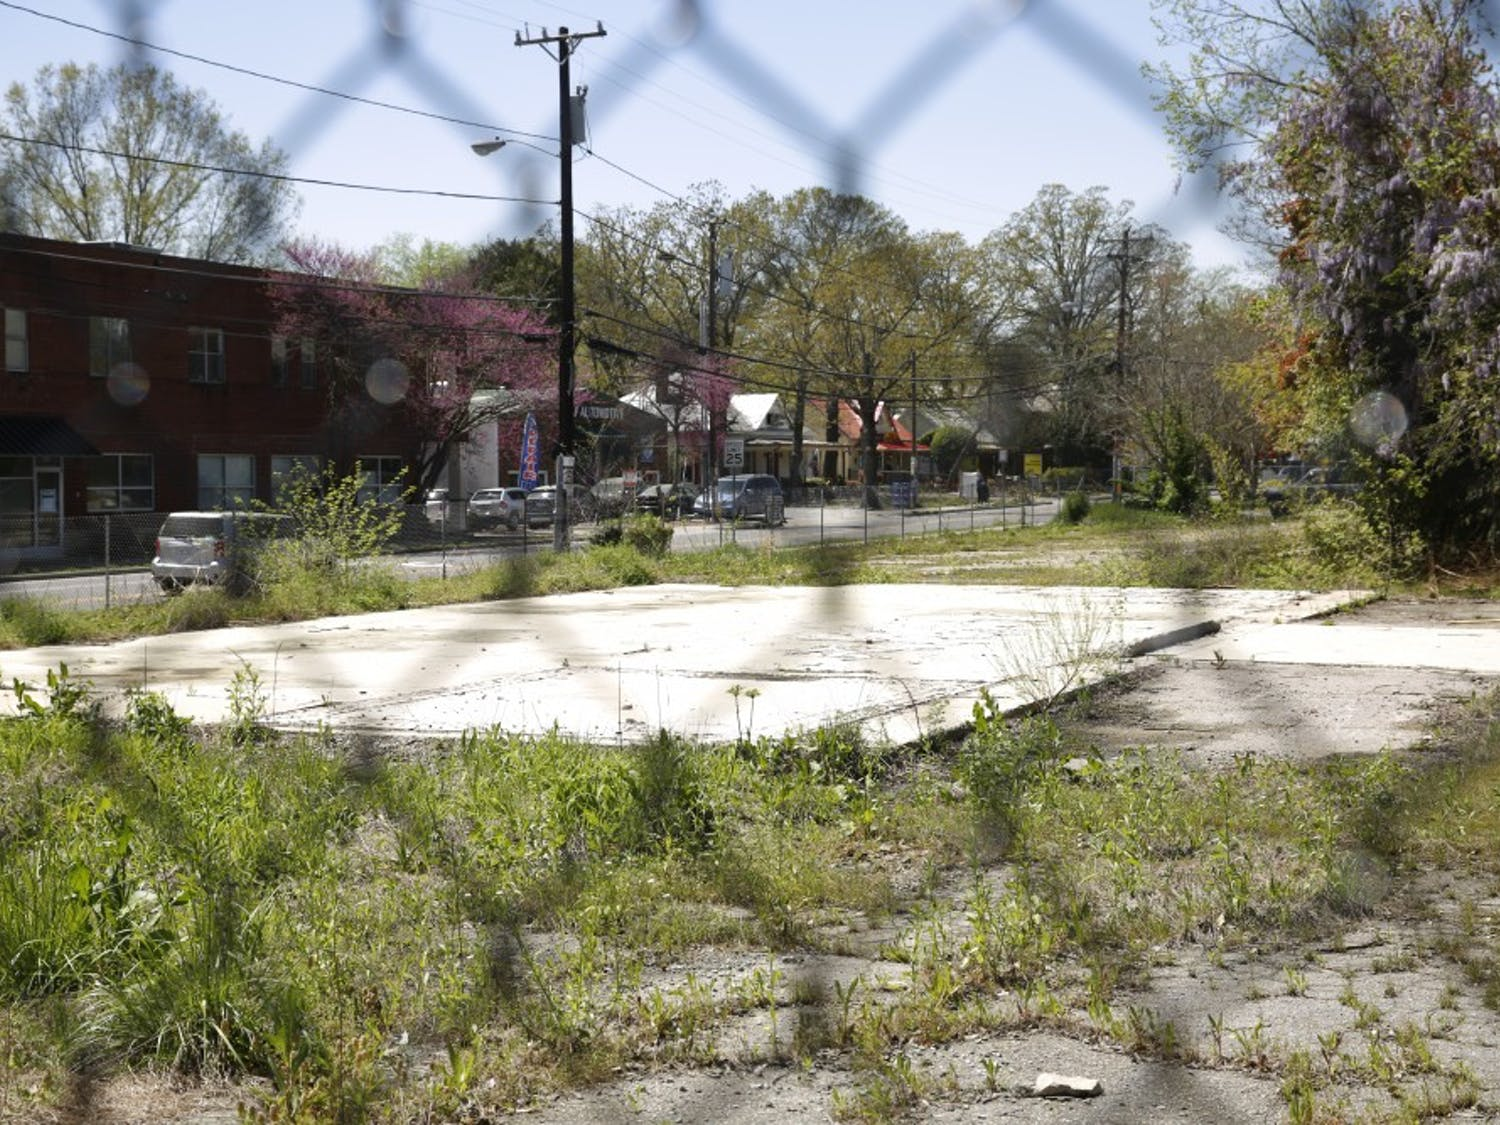 This empty lot in Carrboro, located on North Greensboro Street across from Weaver Street Market, was recently sold to a real estate developer.